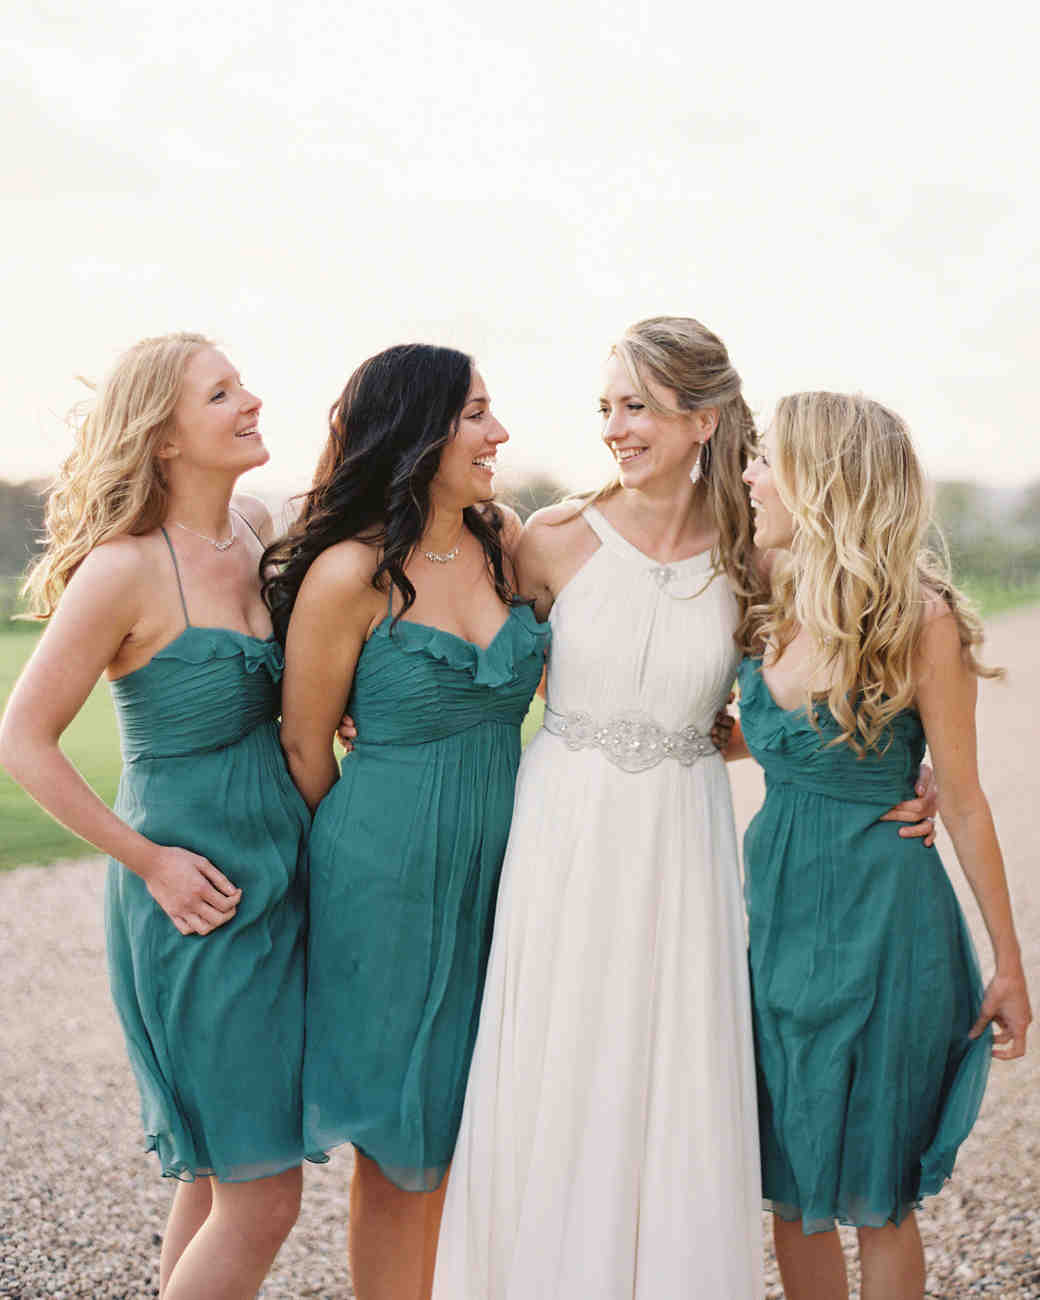 4 Tips for Choosing Your Bridal Party